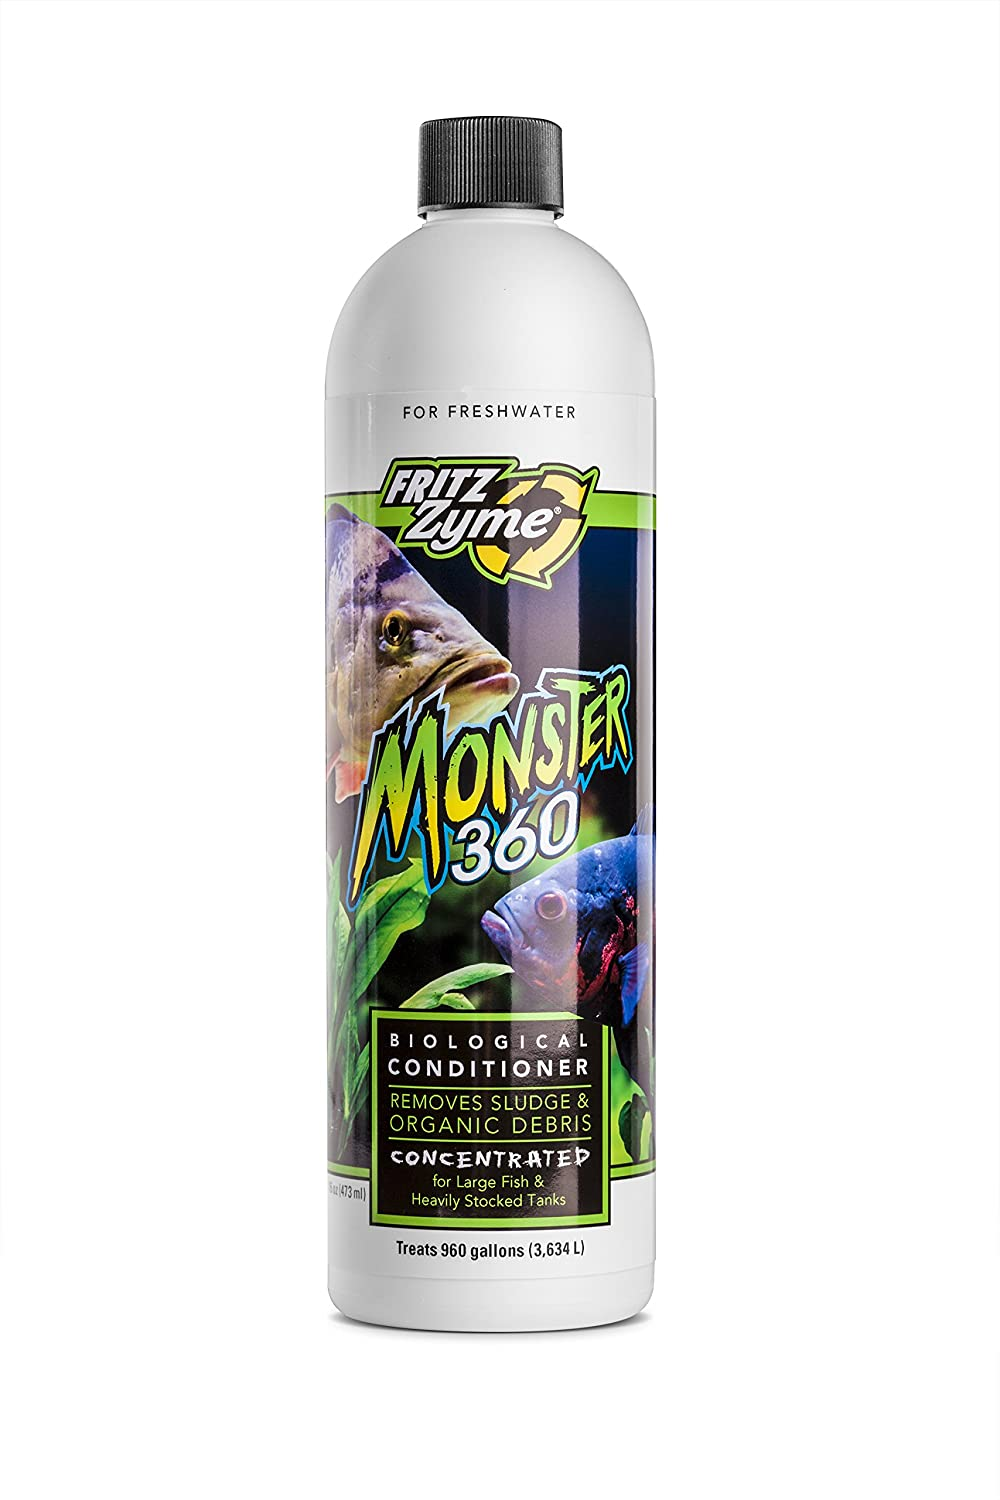 Fritzzyme MONSTER 360Concentrated Freshwater Biological Aquarium Cleaner16oz